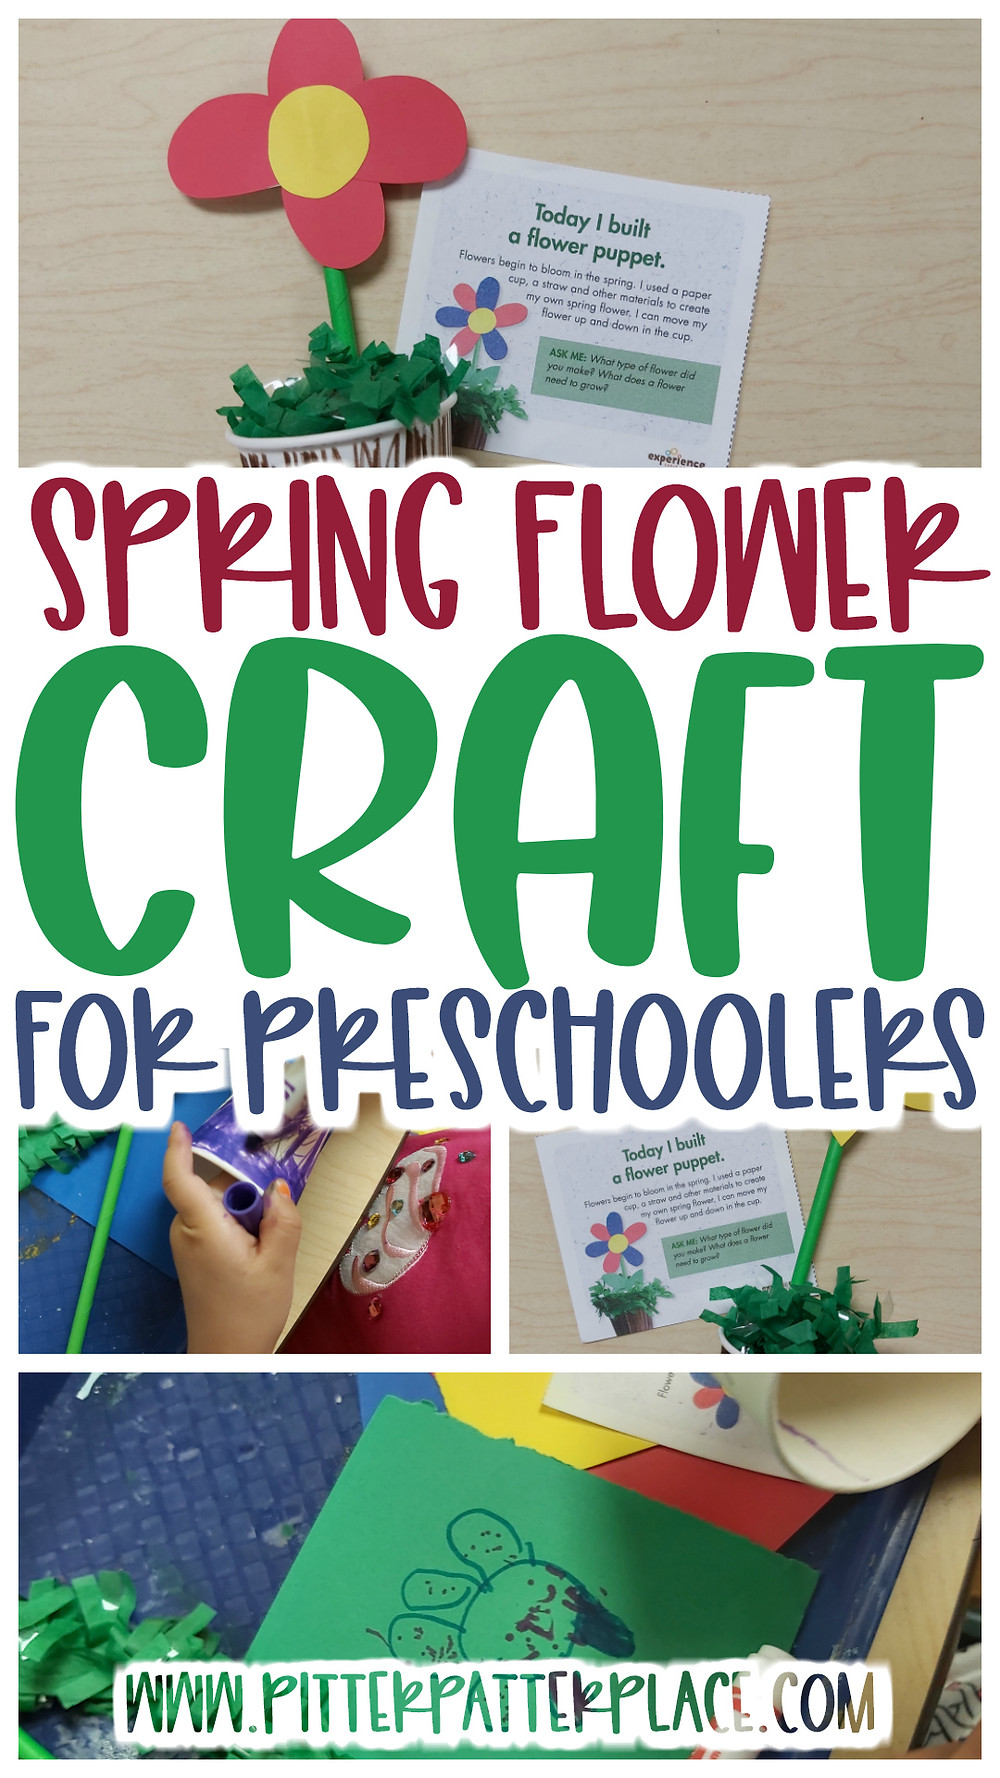 collage of flower crafts with text: Spring Flower Craft for Preschoolers